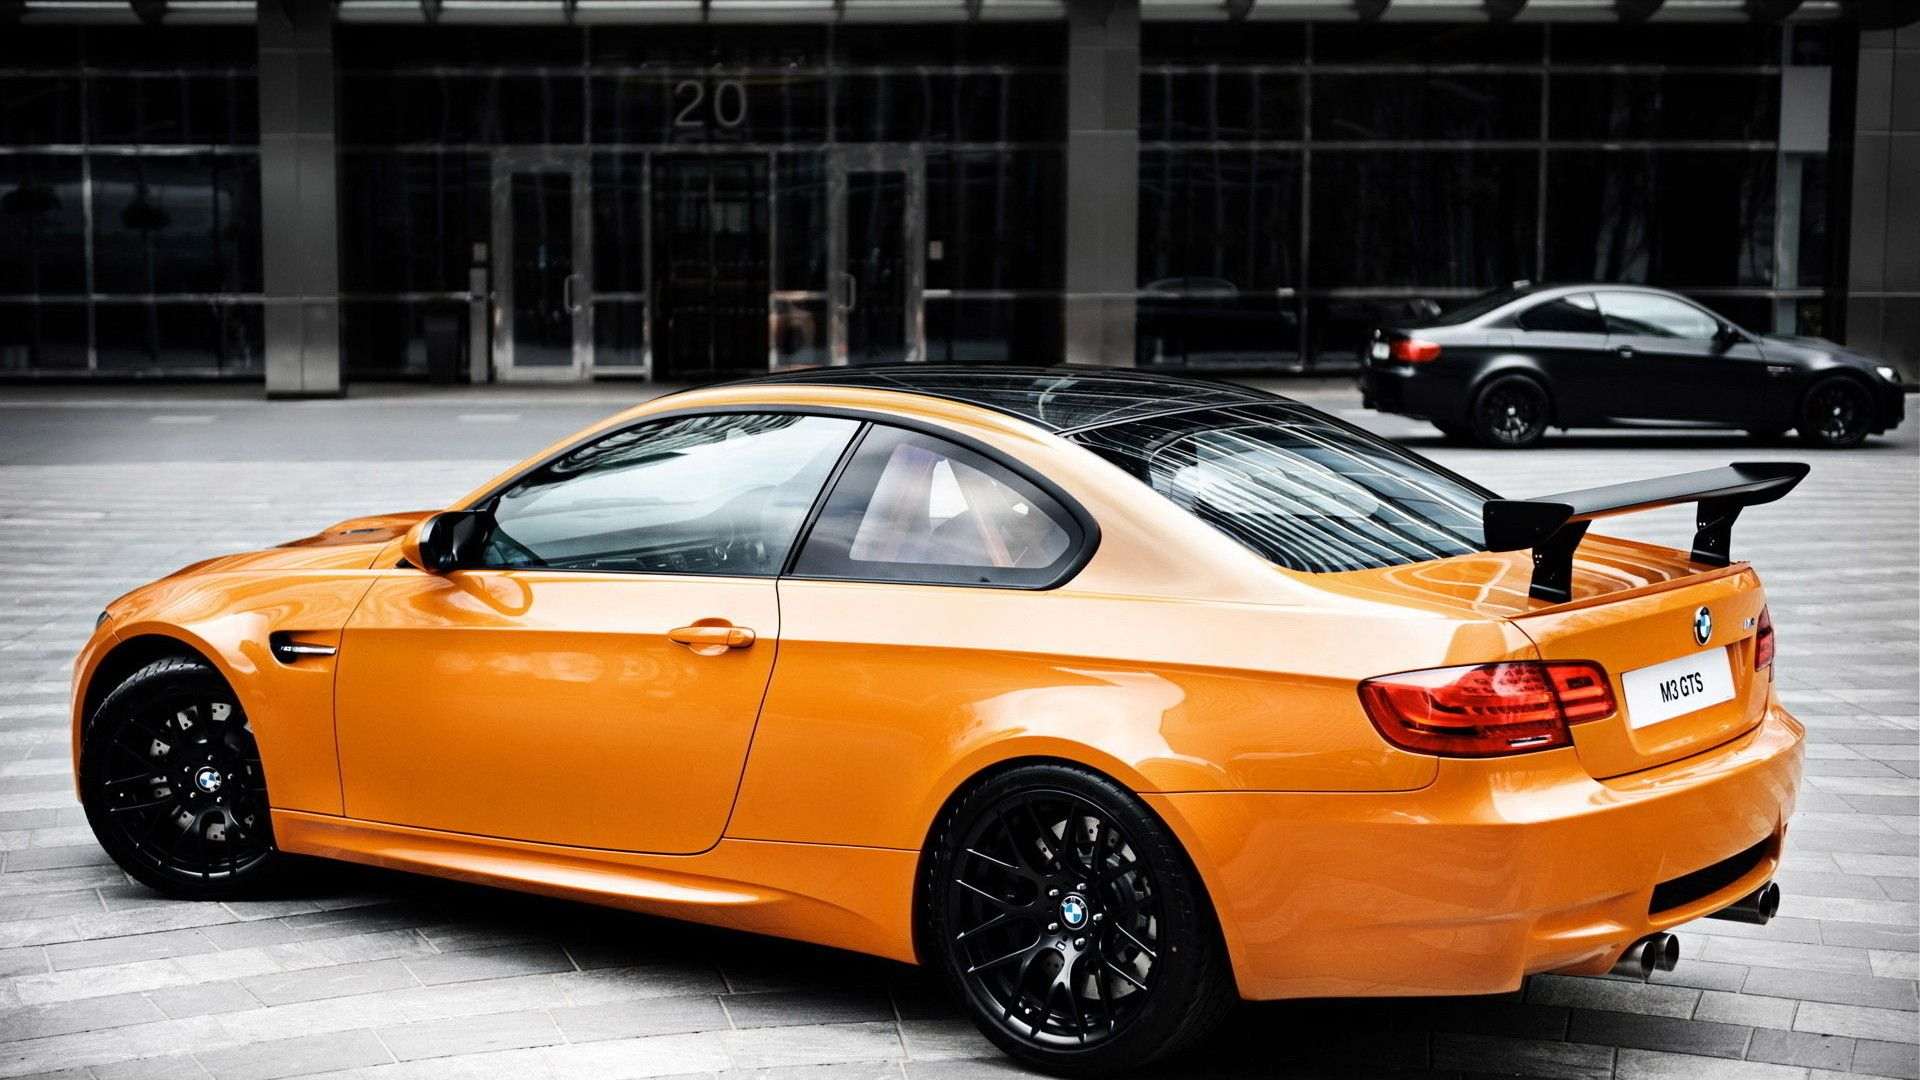 Cars Wallpaper Bmw M Wallpapers Photo Free Download Wallpapers